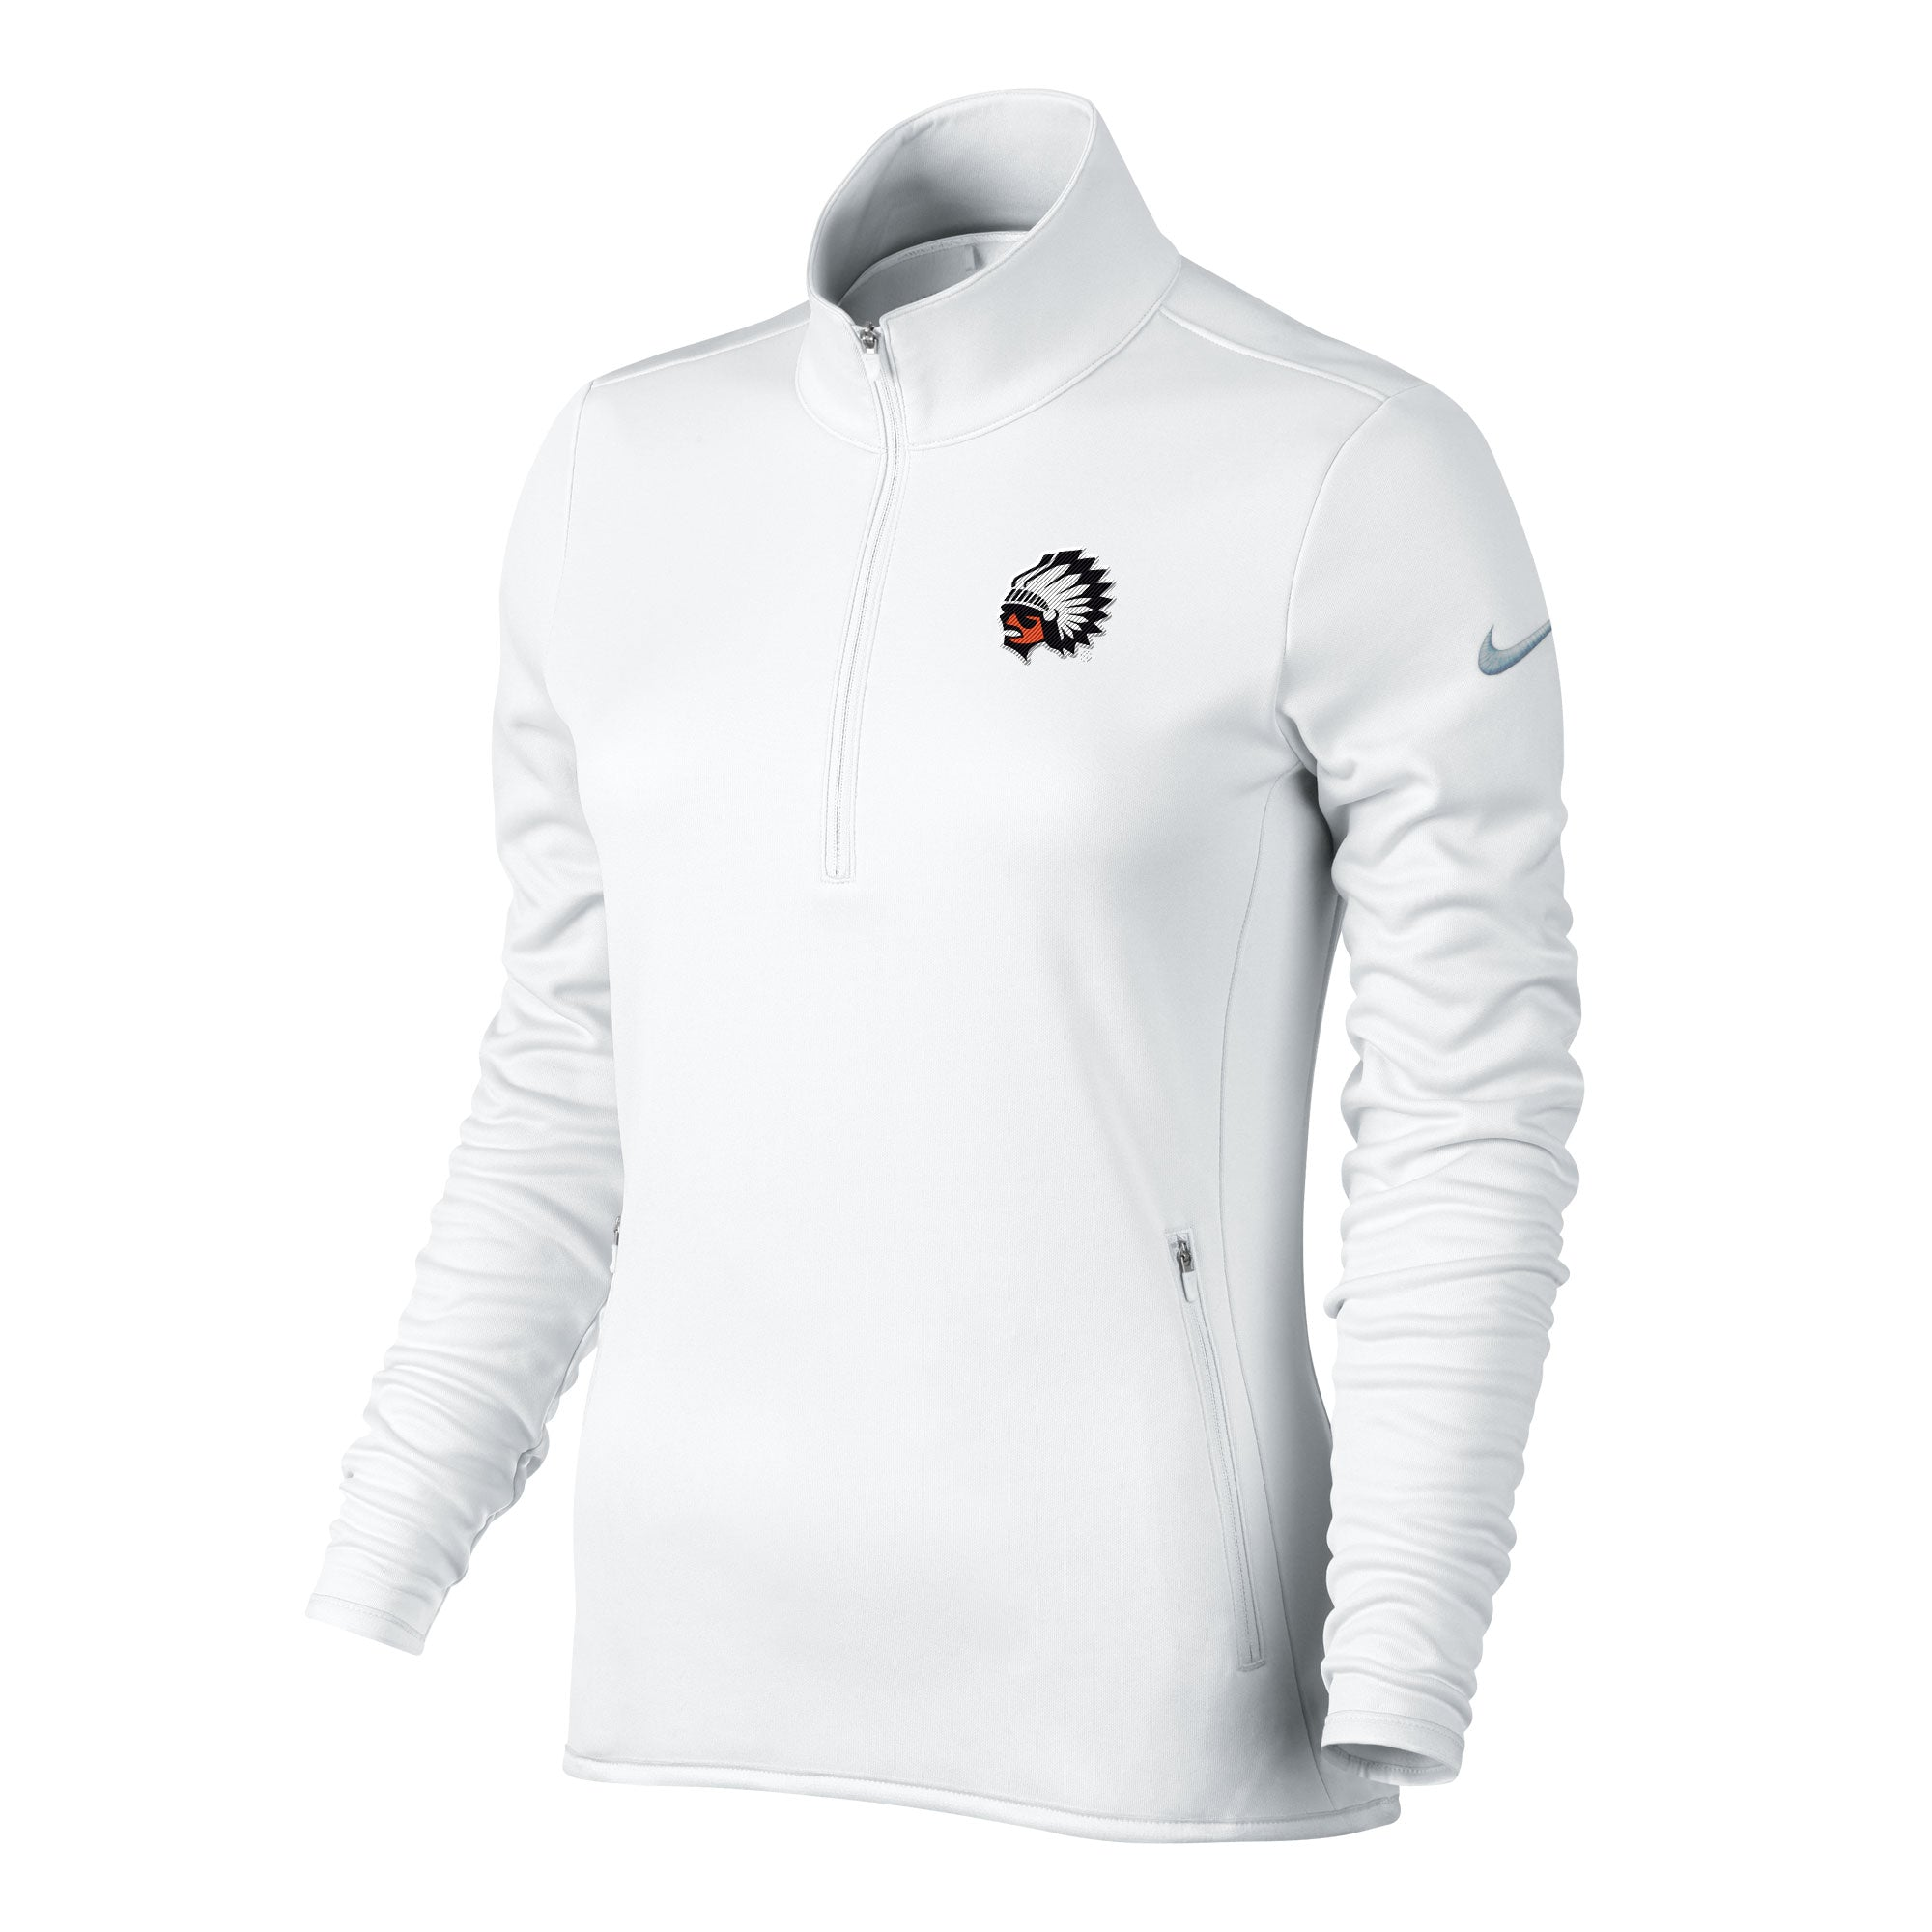 Ladies Nike Golf Repel 1/2 Zip